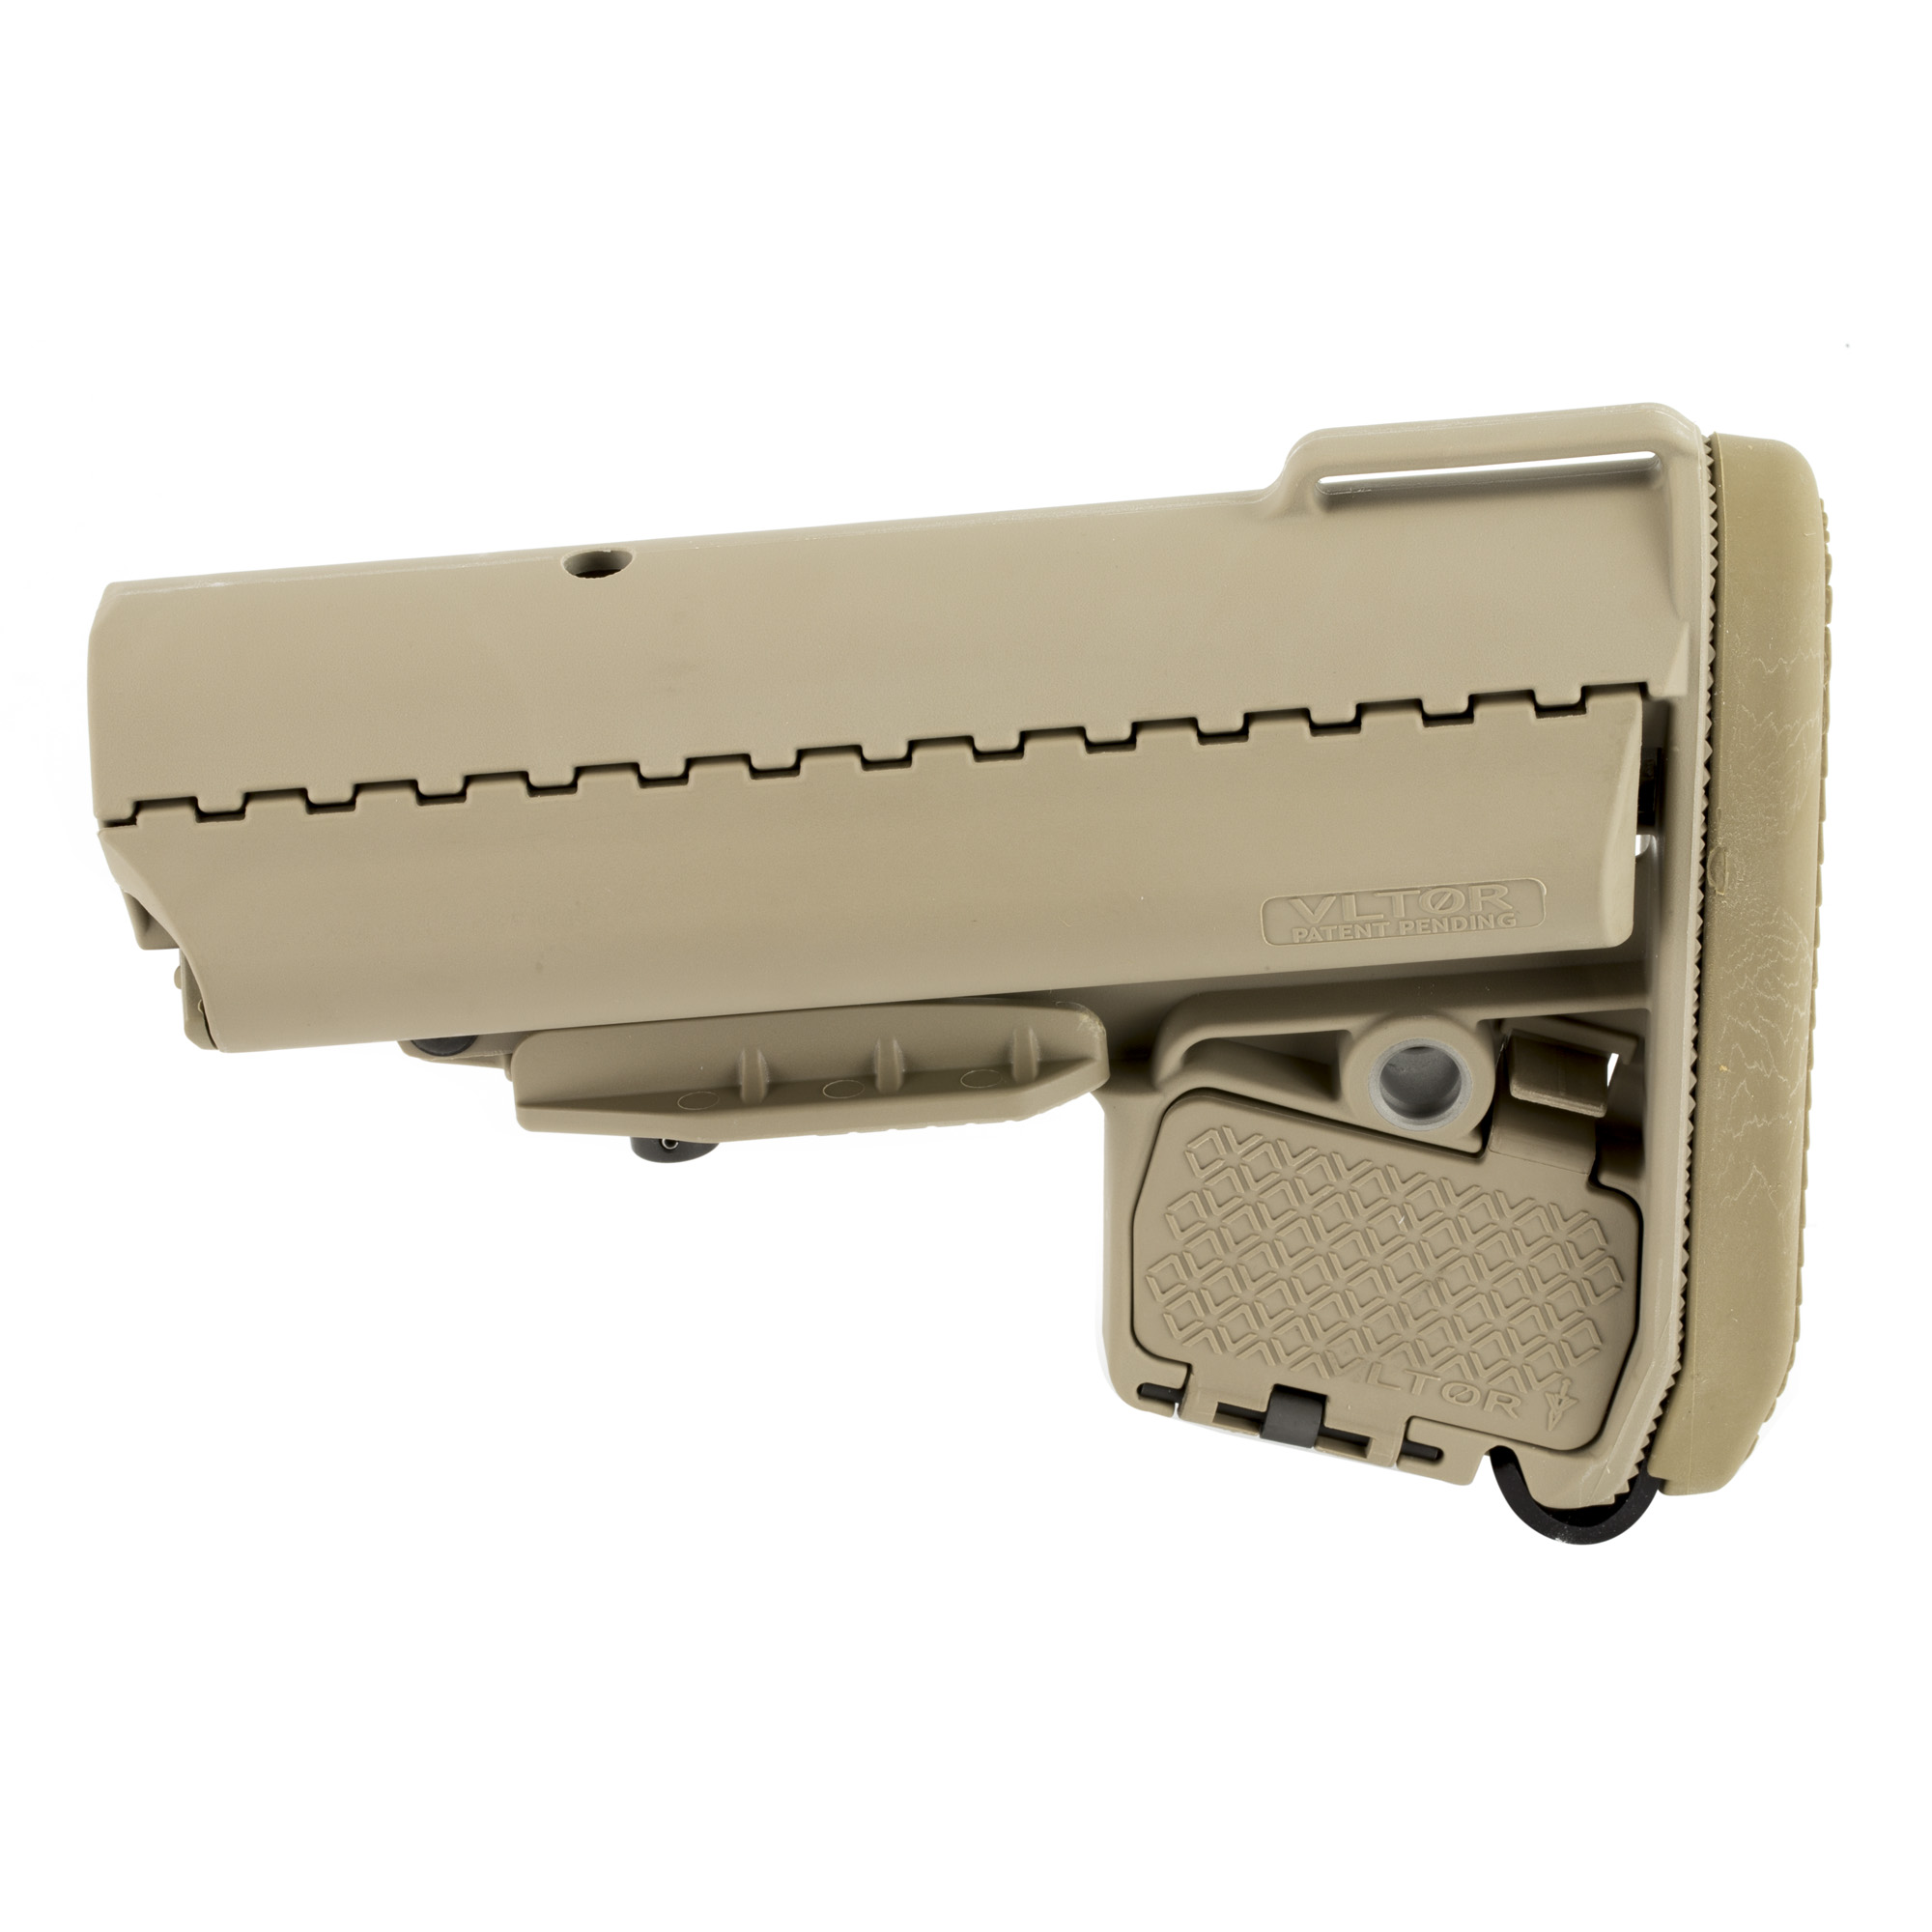 """The VLTOR EMOD provides a variety of enhancements in comparison to other stocks. The increased length is a major benefit for those weapons using scoped rifles"""" as it increases the available comb for any length of pull. The EMOD is slightly wider and longer at the toe than a regular M4 stock with a noticeable negative pitch making transitions from the ready position feel more natural."""